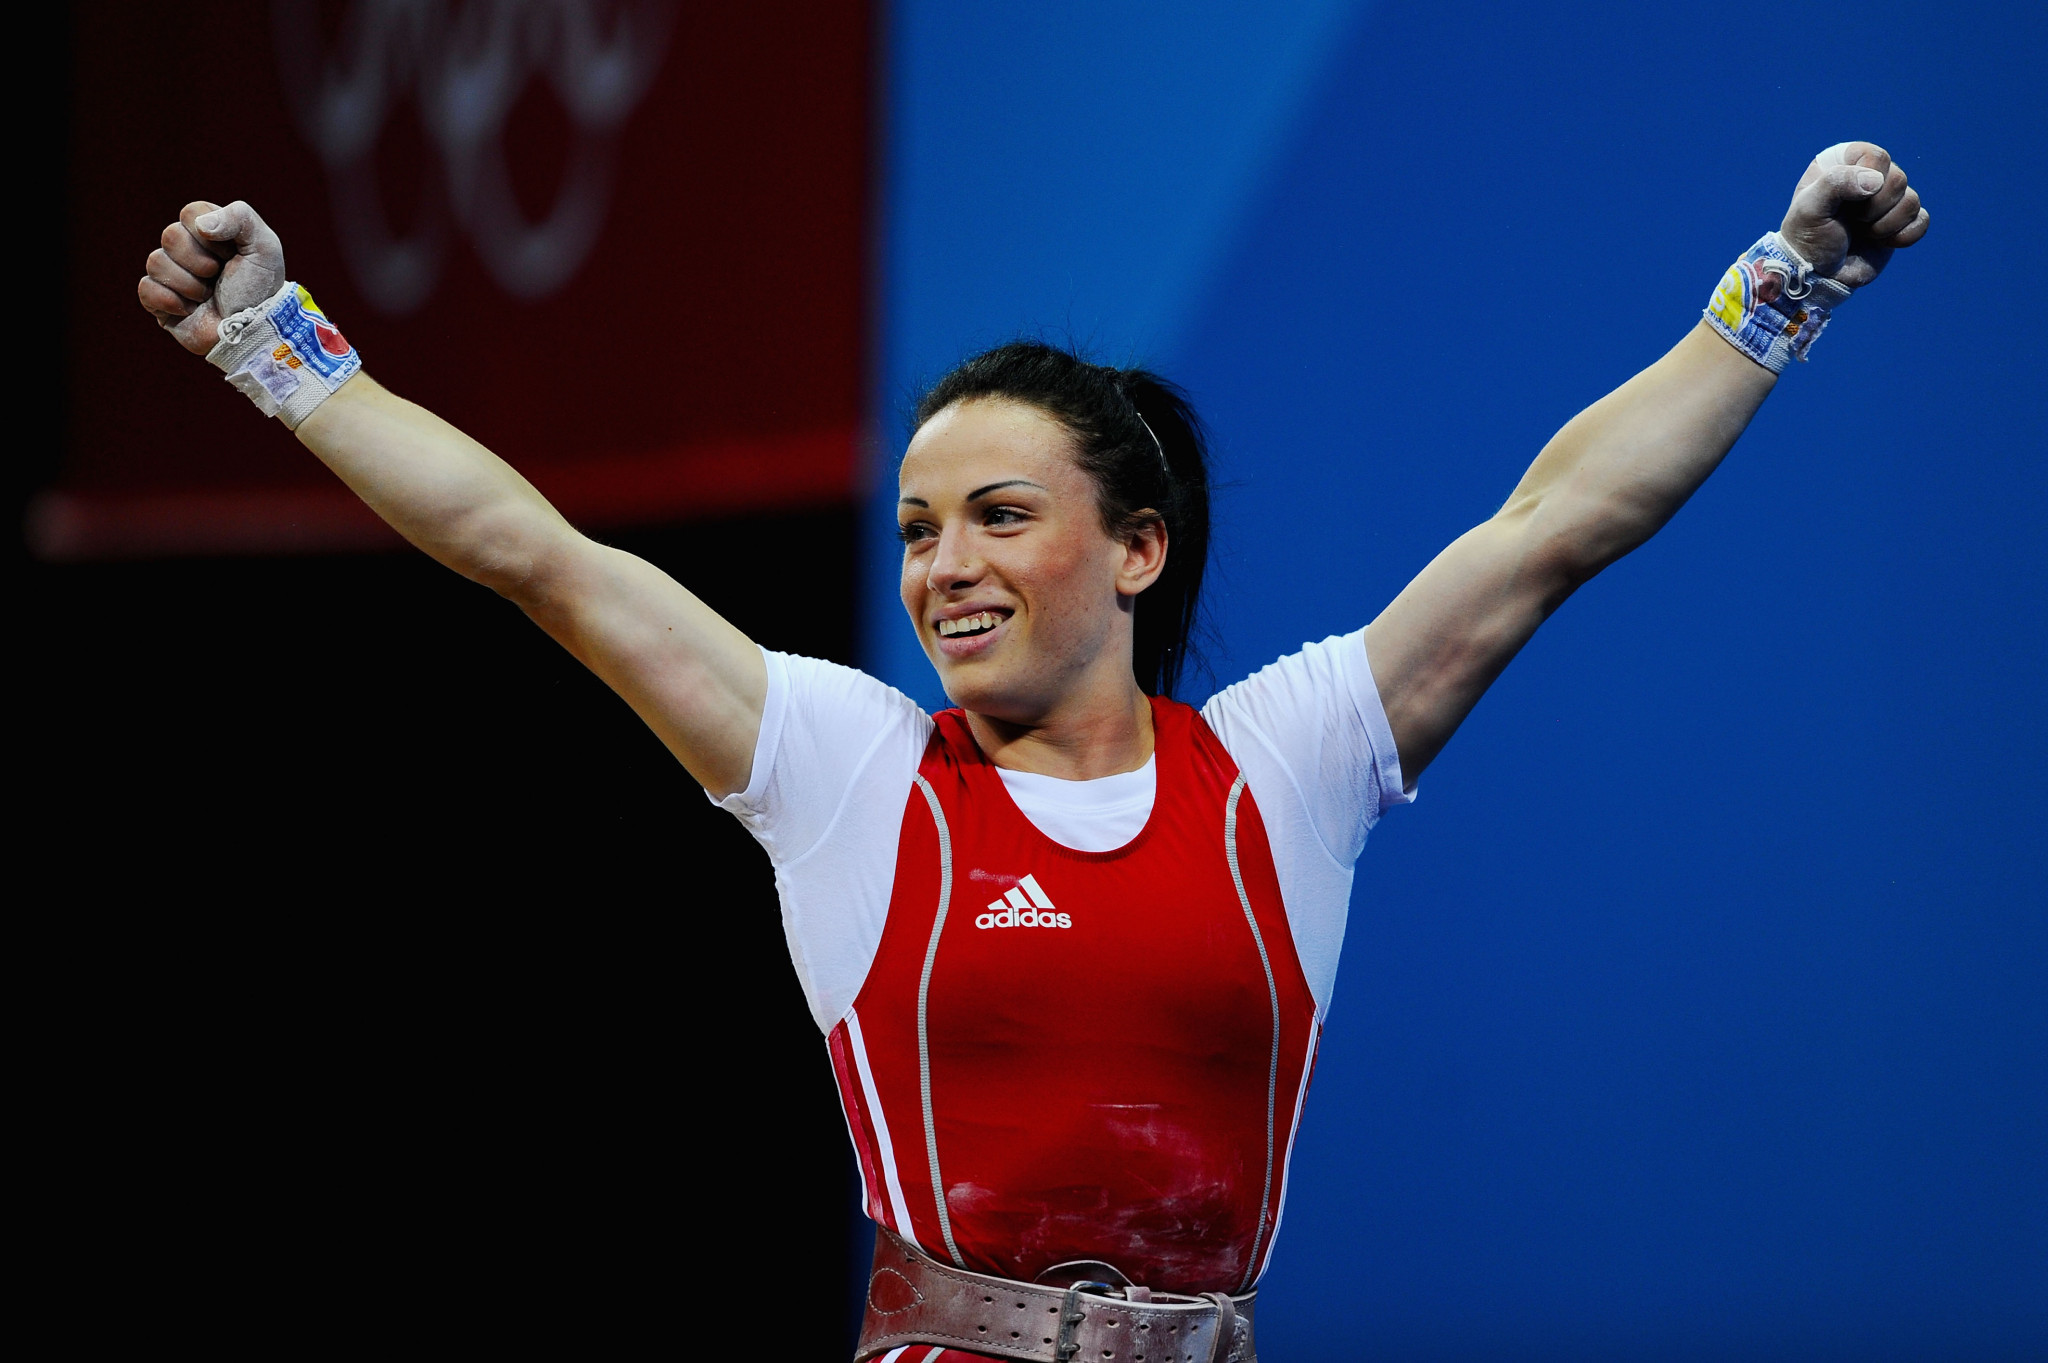 Moldovan weightlifter Cristina Iovu was stripped of her London 2012 Olympic medal when the IOC retested stored samples  ©Getty Images